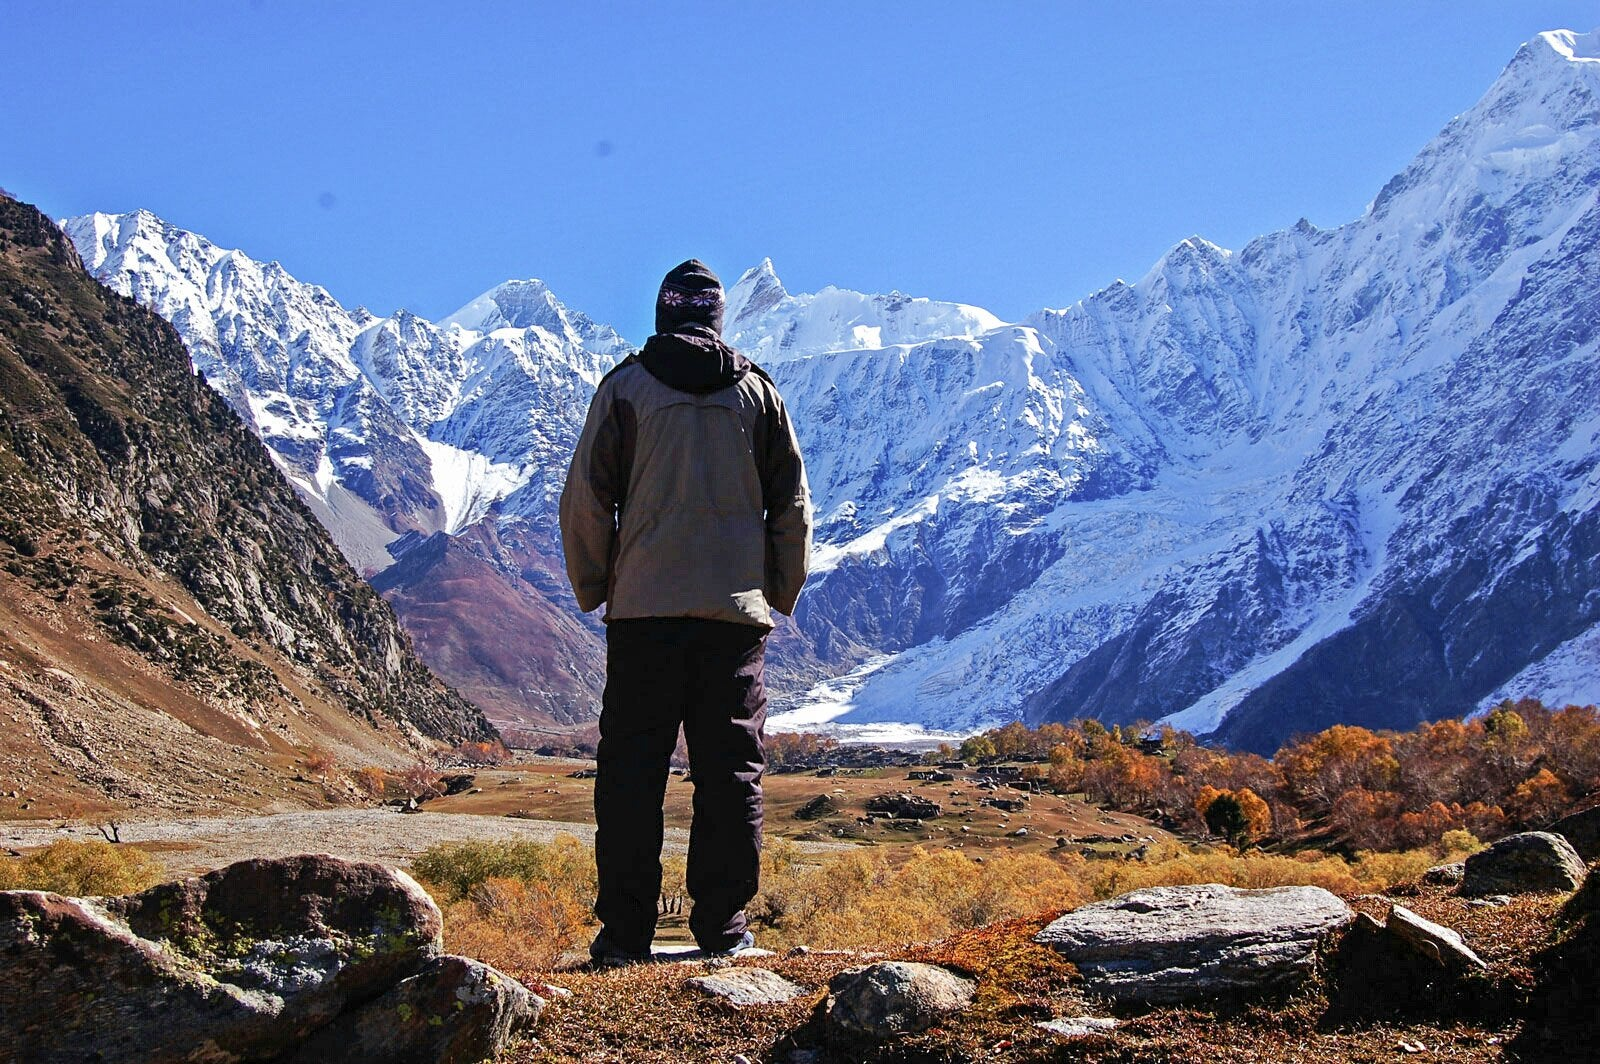 Trip to Haramosh Valley and Kutwal Lake Holiday Travel & Tour Package